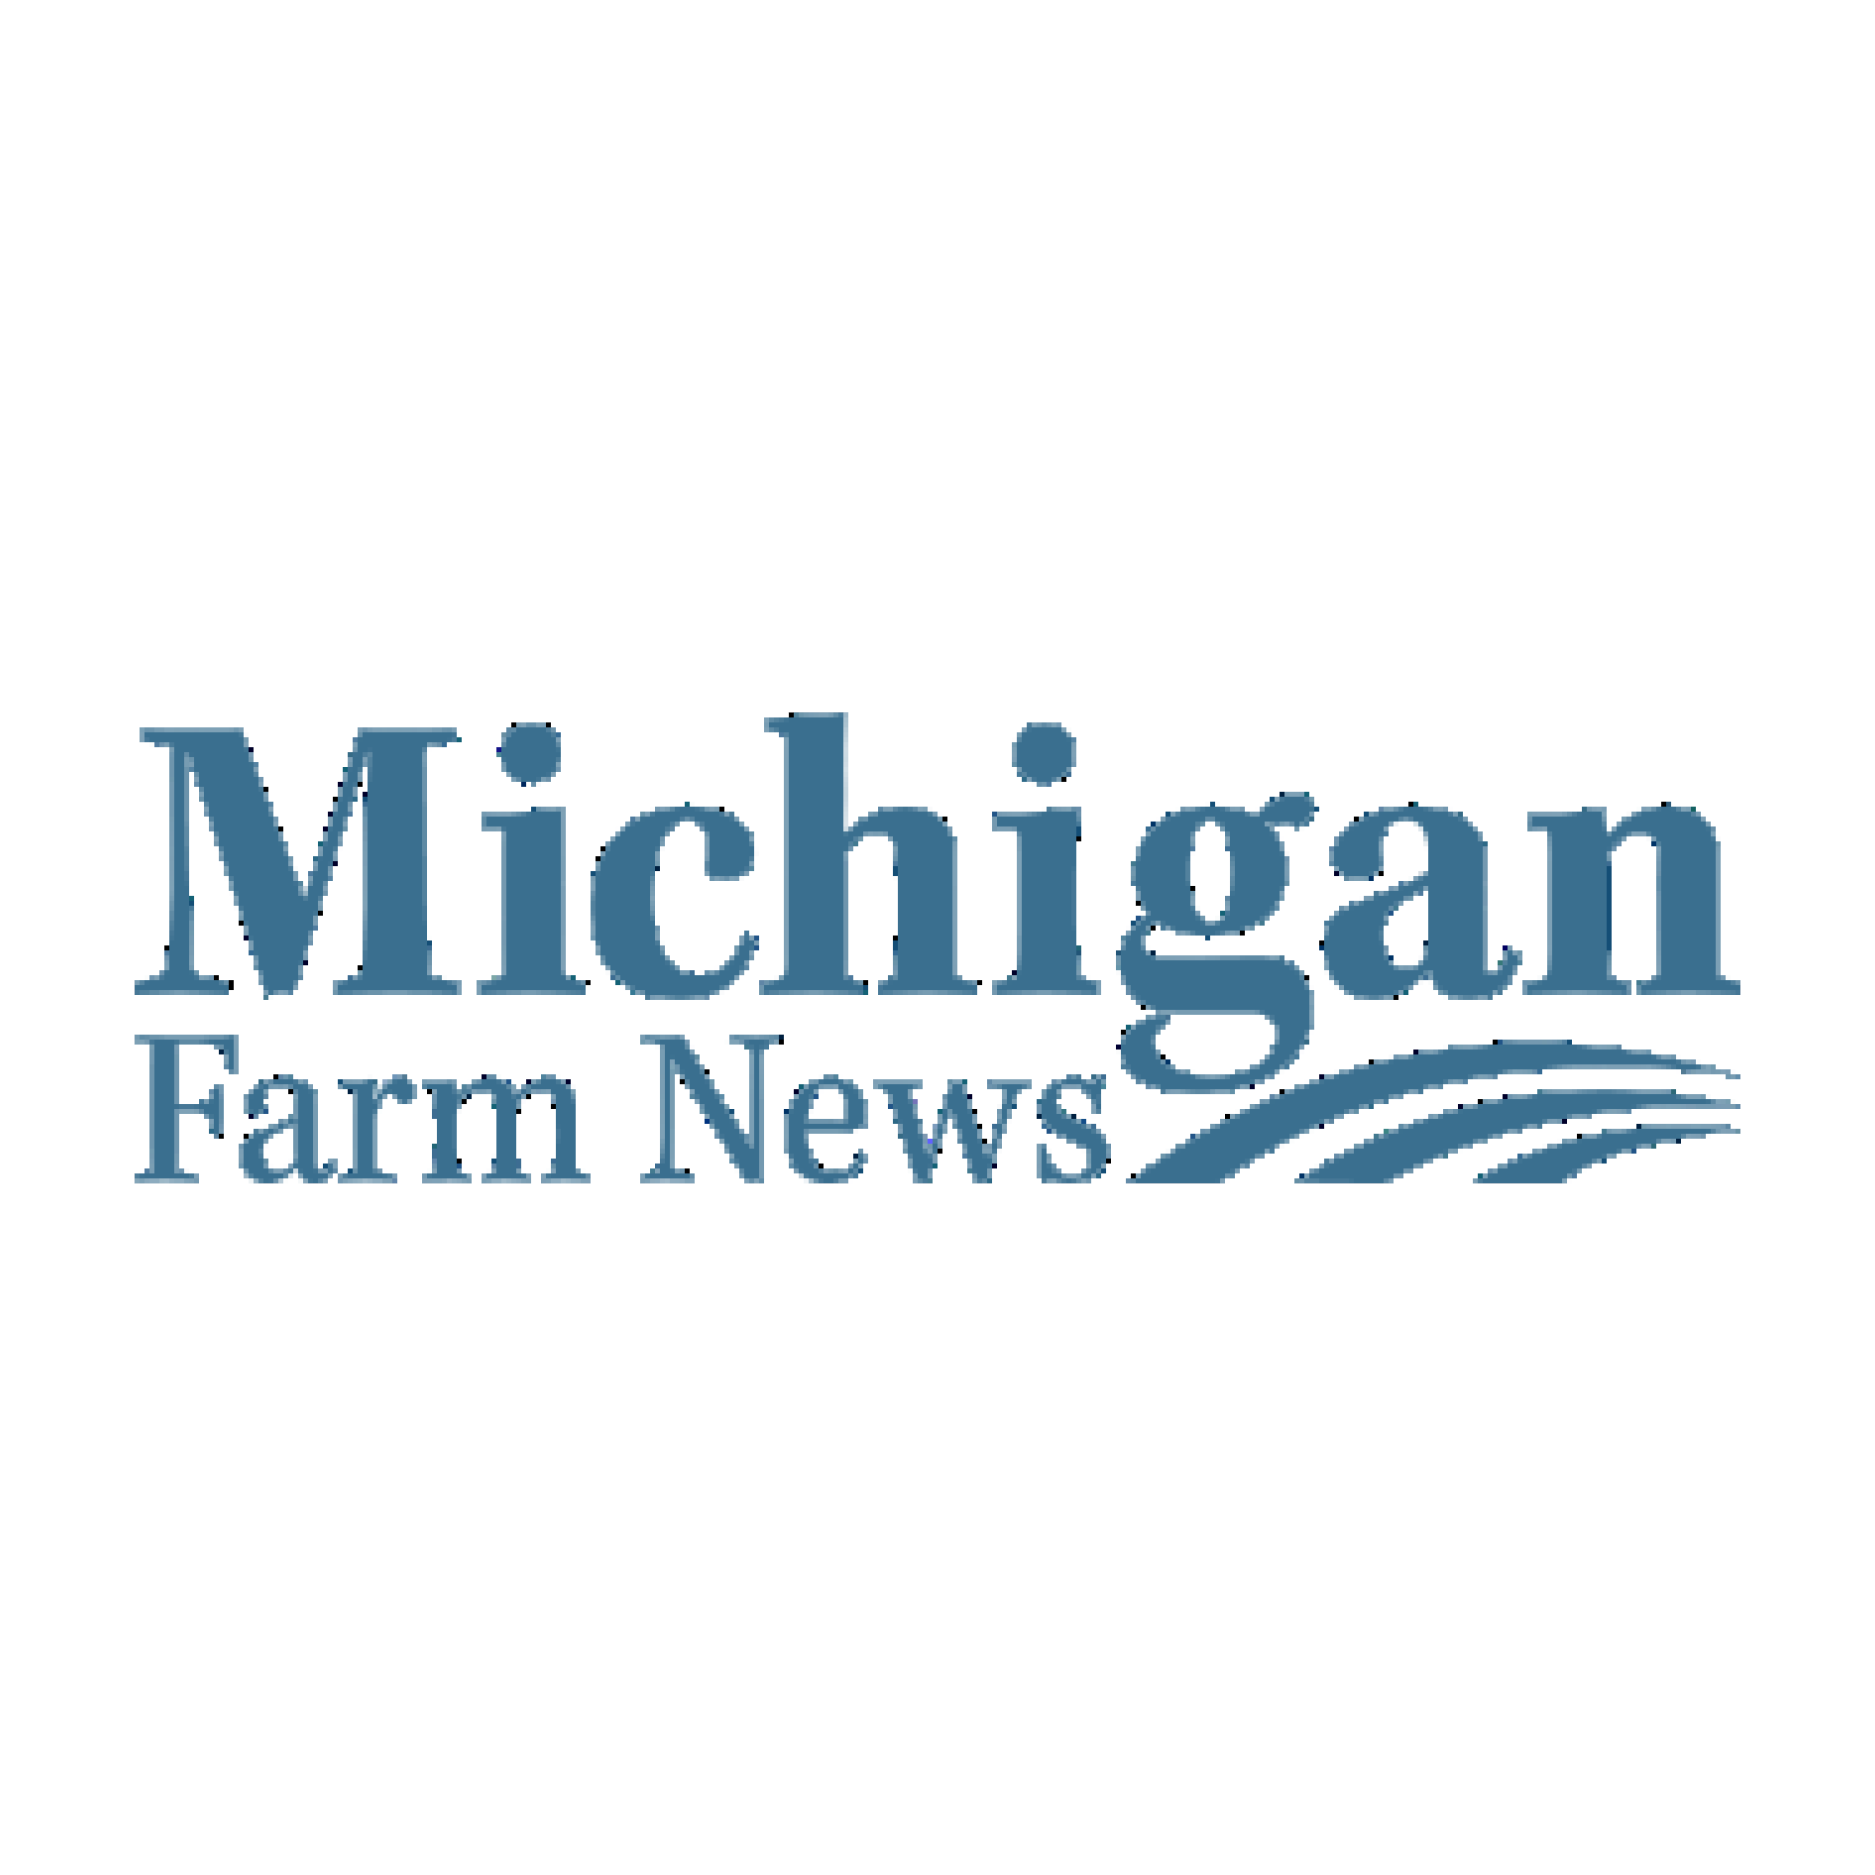 Europe sets example for U.S. milk labelling, Michigan Farm News